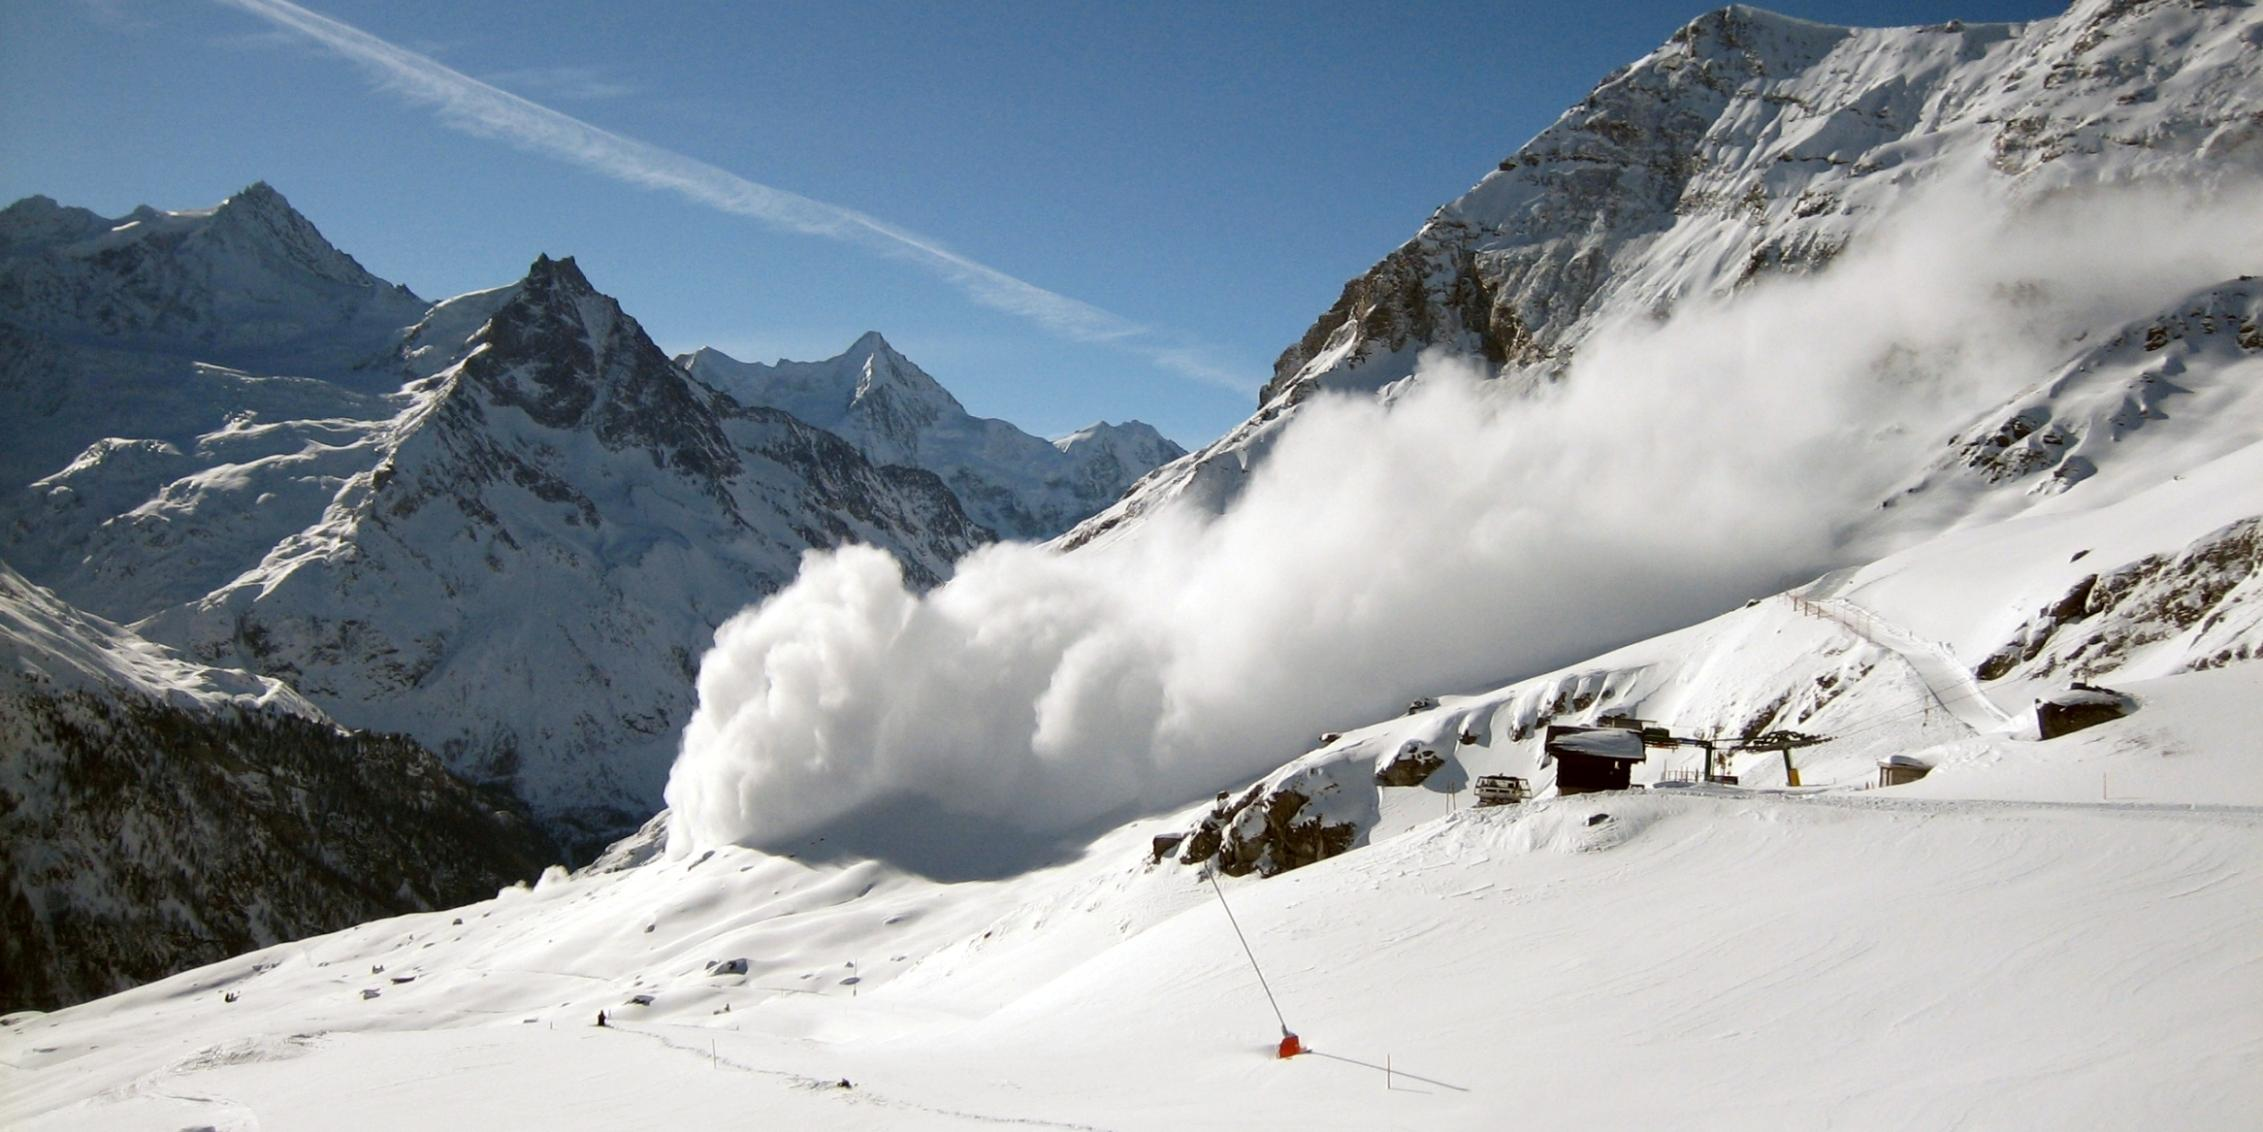 A picture of an avalanche coming down a snow-covered mountain side.